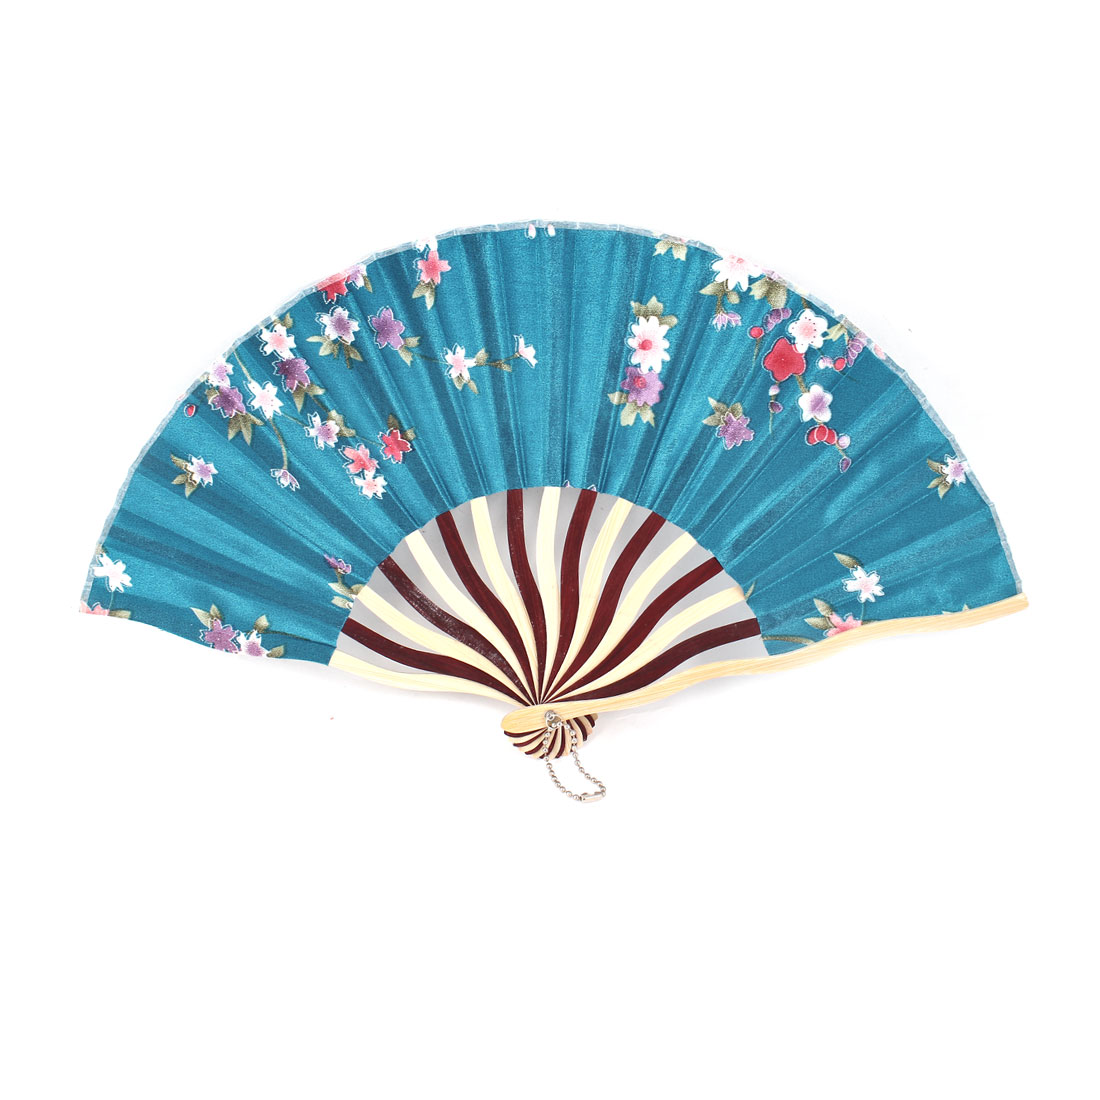 "Ornament Plum Bblossom Pattern Bamboo Folding Hand Fan 14.1"" Unfolded Width"